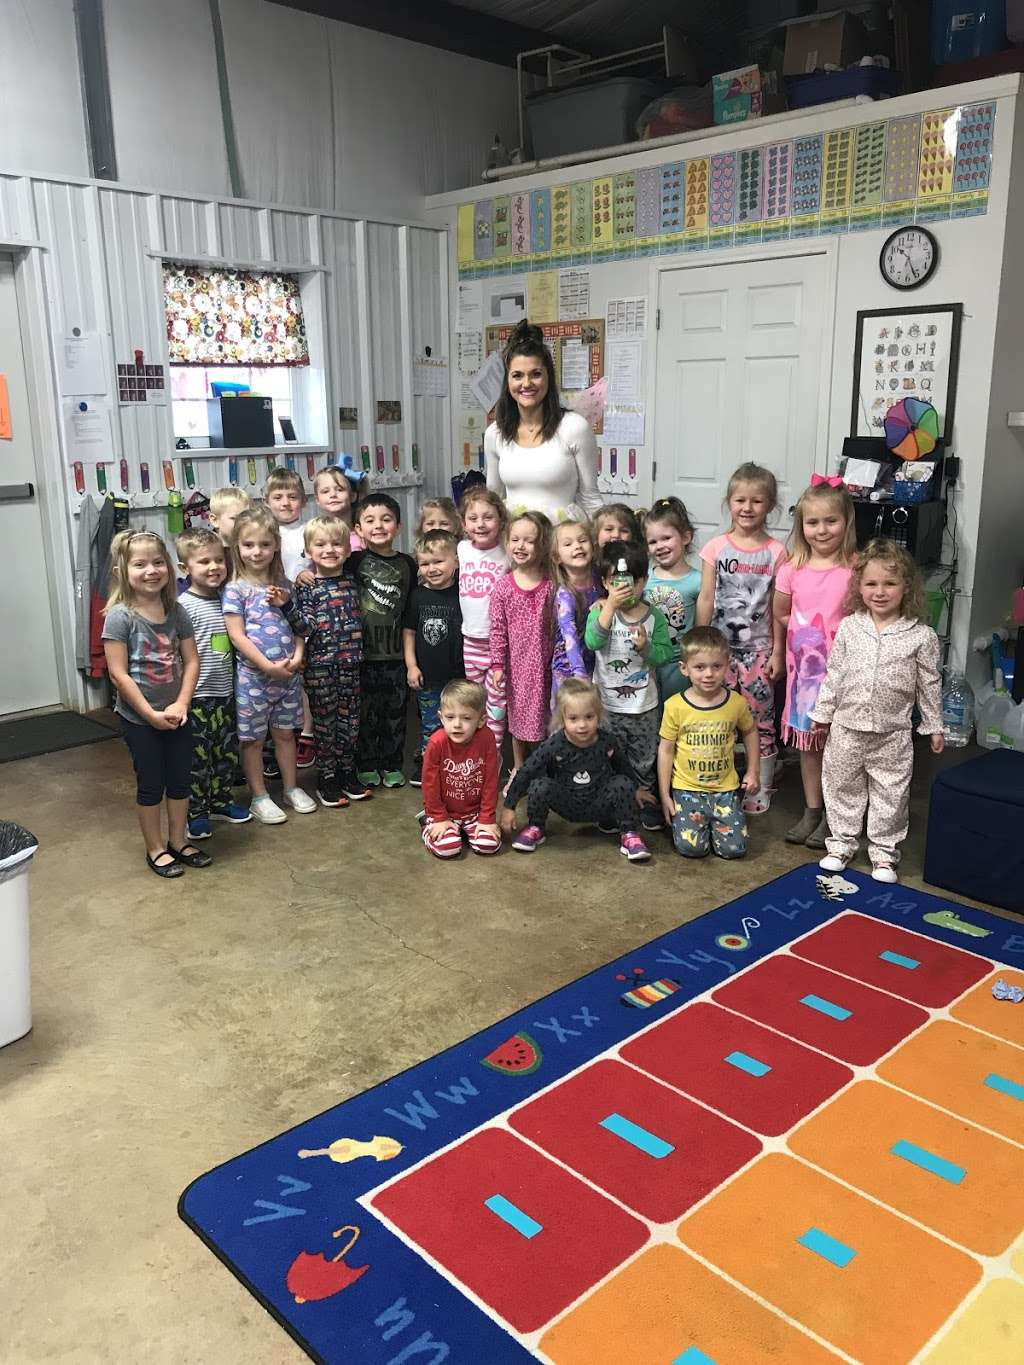 A Better Class Learning Academy - school  | Photo 5 of 10 | Address: 501 Kirby Dr, West Columbia, TX 77486, USA | Phone: (979) 345-3202